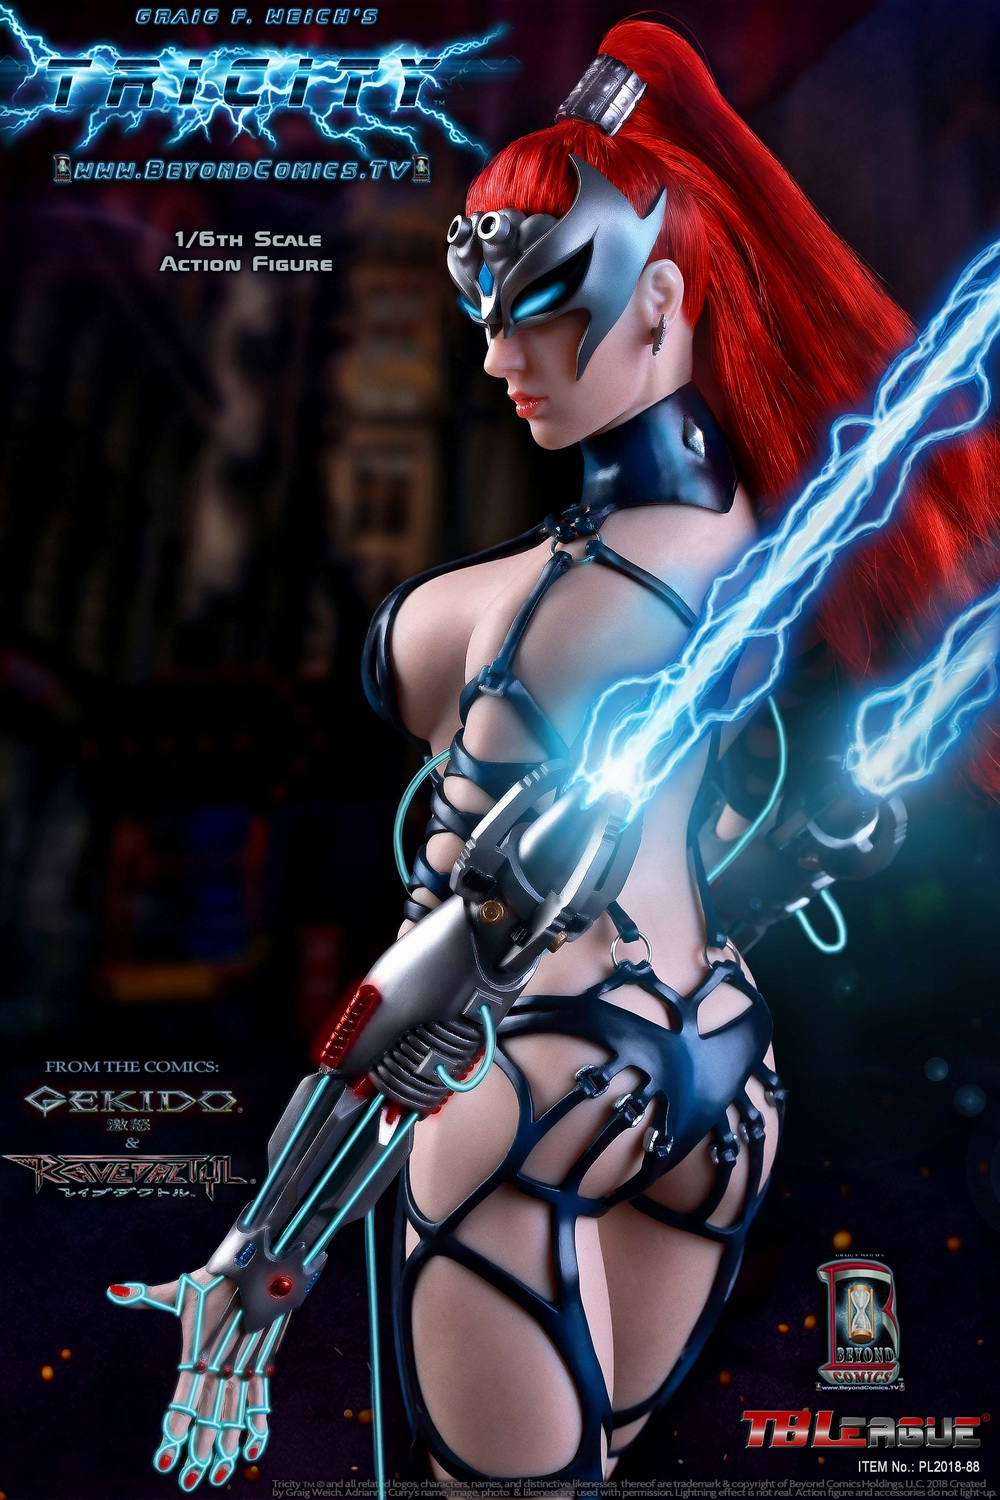 cosplay - NEW PRODUCT: TBLeague new product: 1/6 lightning goddess - Cui Si / TRICITY-Goddess of Lightning (PL2018-88#) 15380210